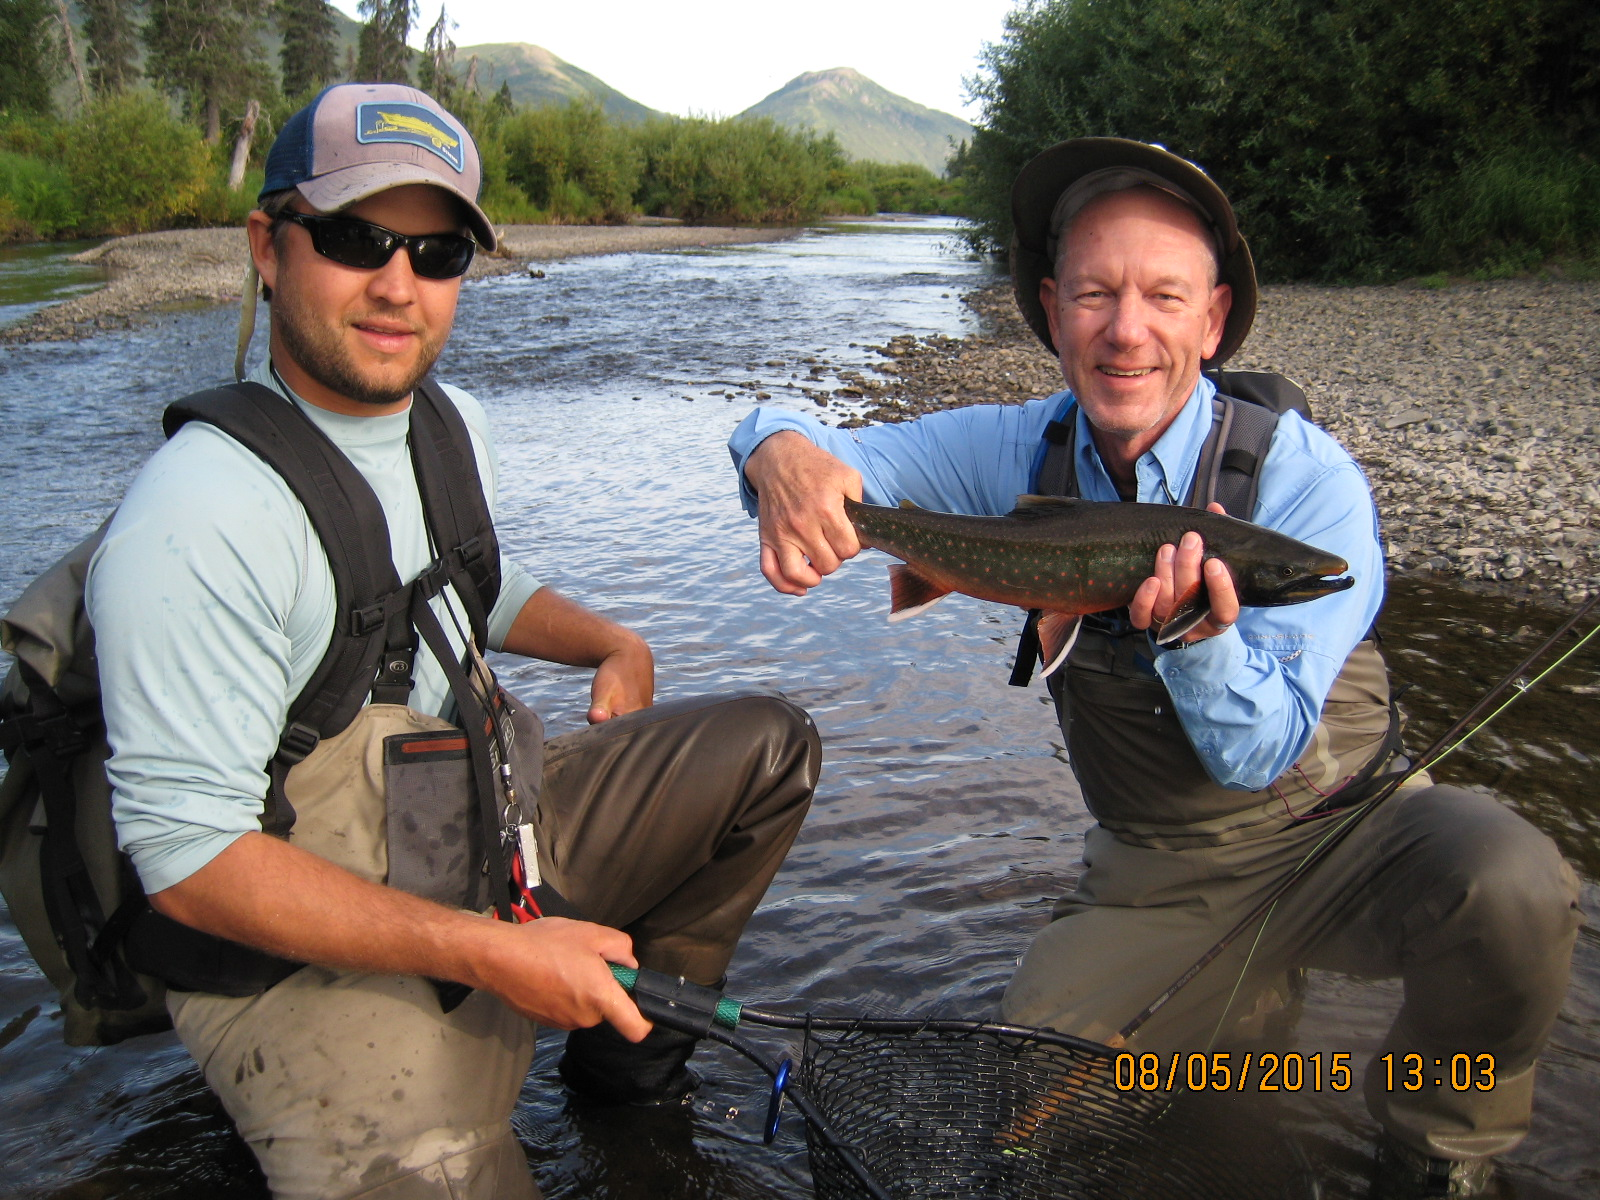 Dianne noted that Eric-the-guide was good looking, never mind the great fish or yours truly